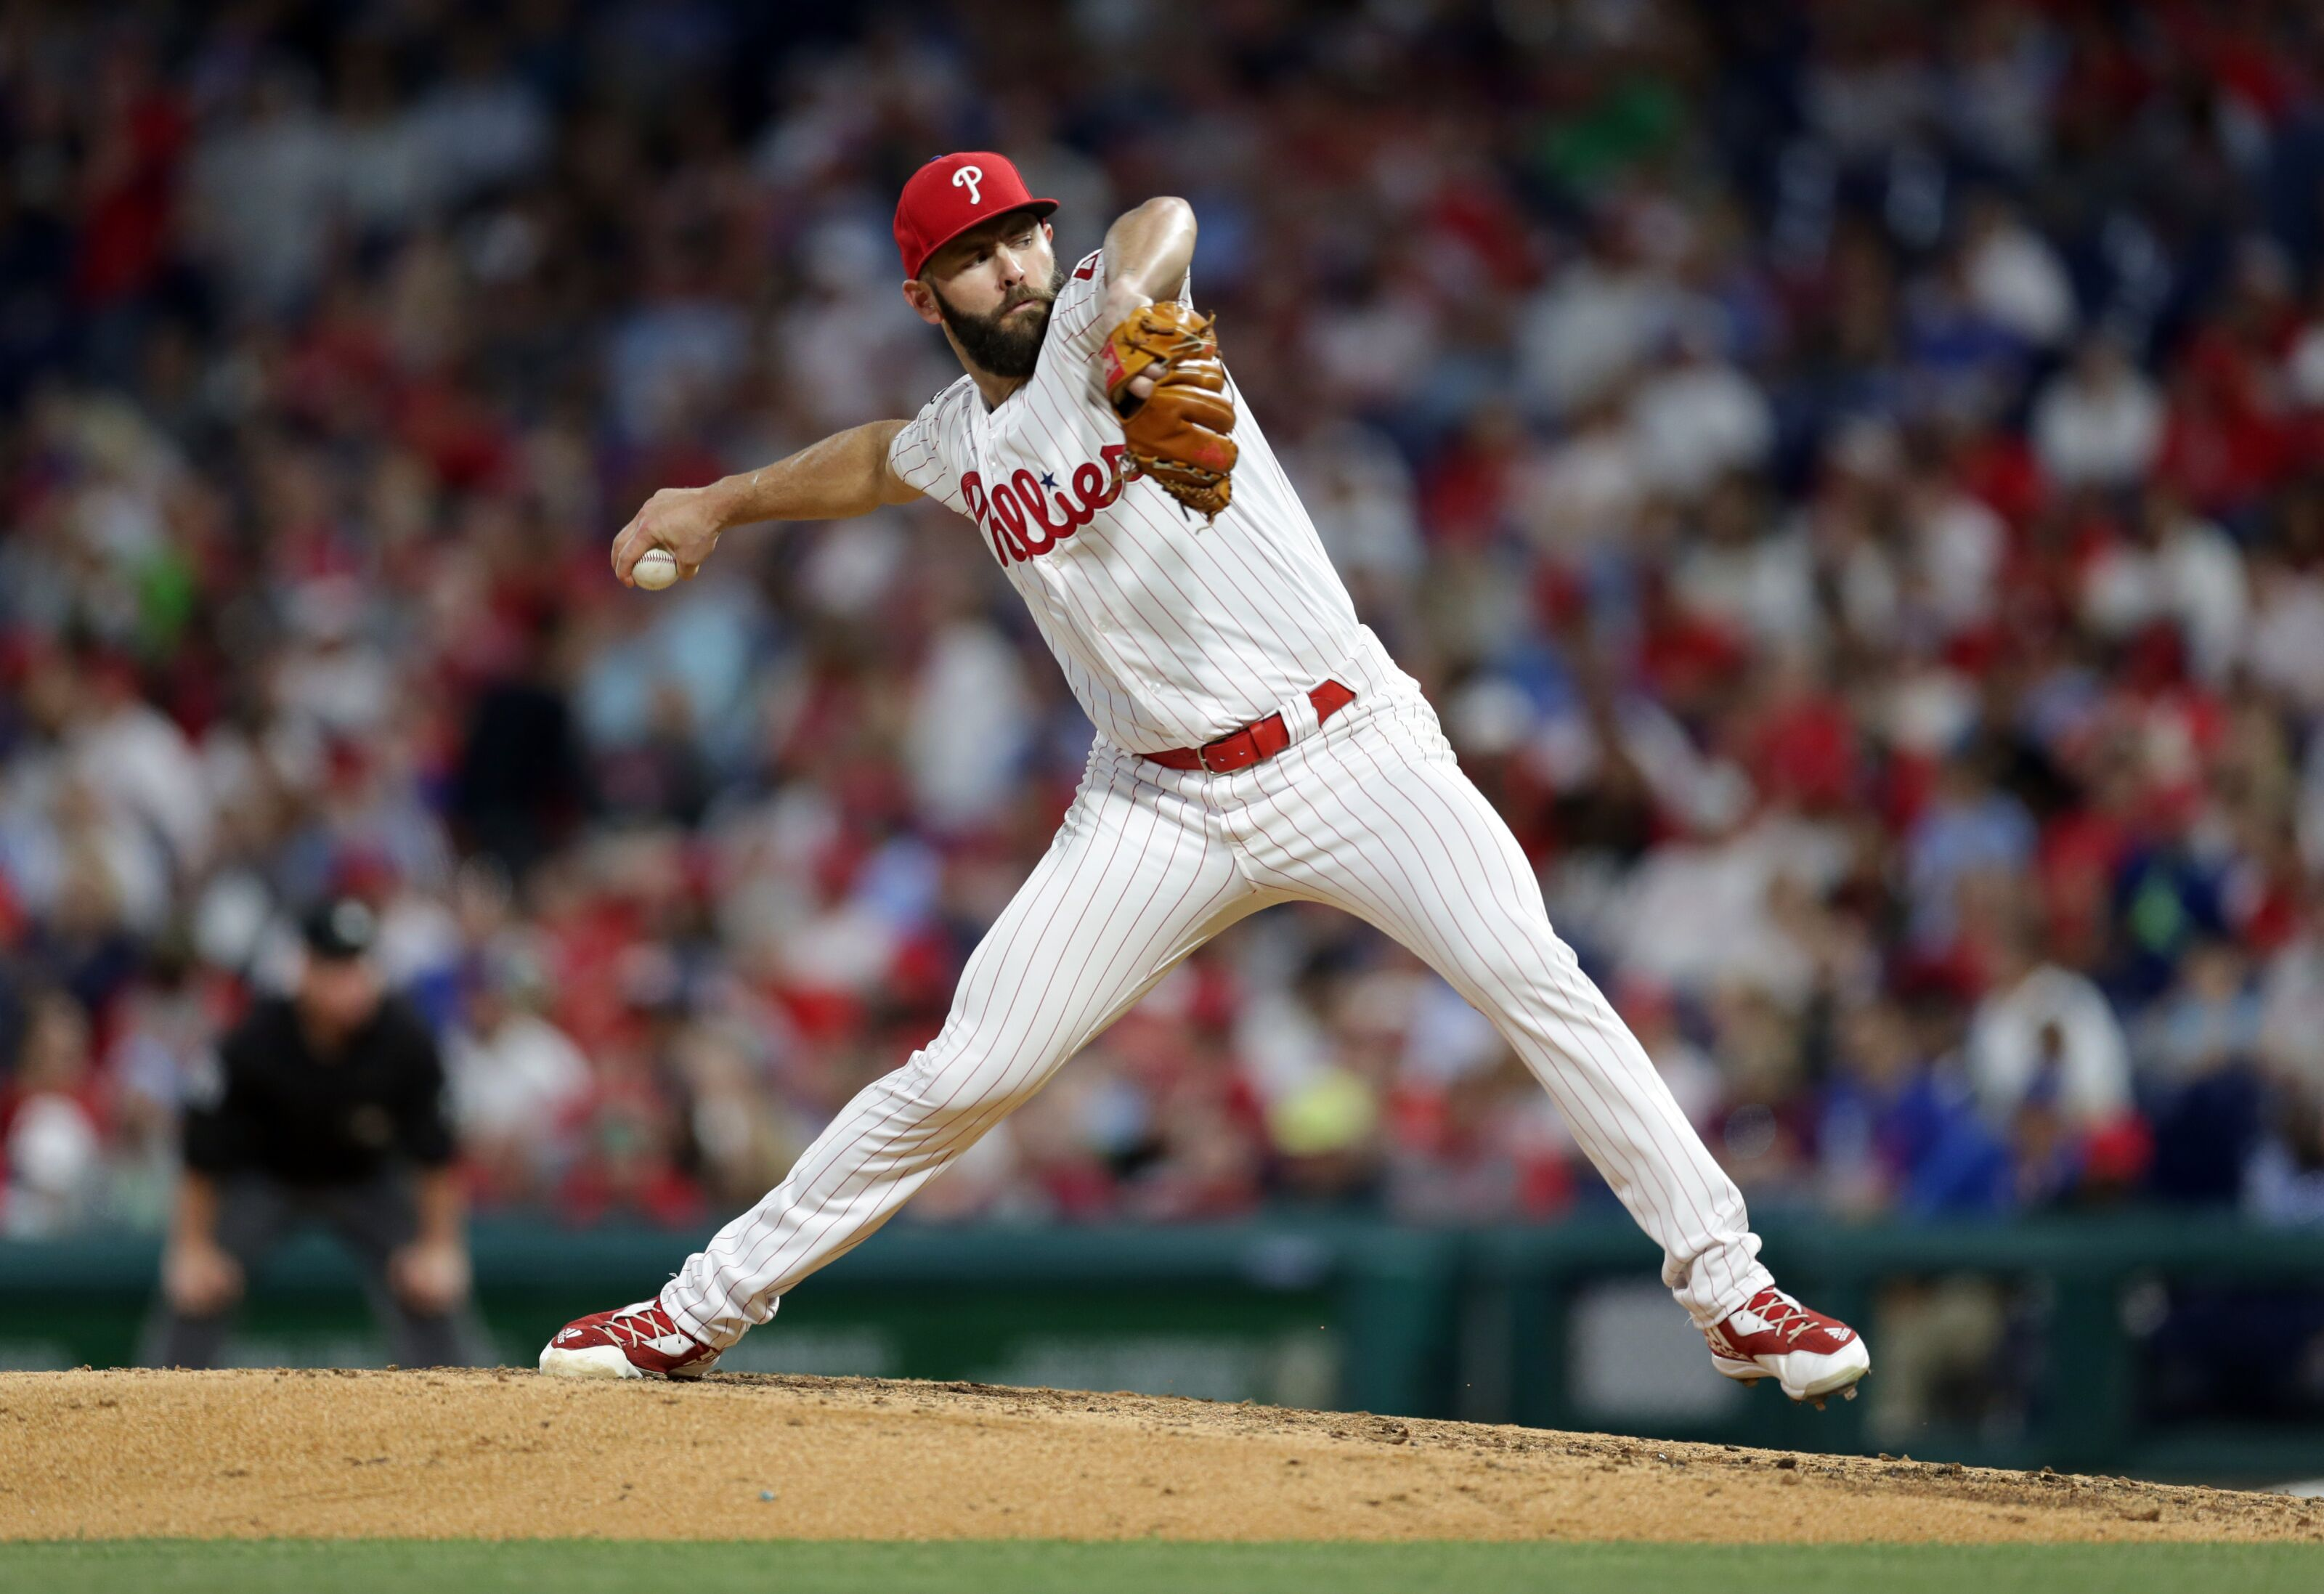 Phillies need to get more out of their starting rotation